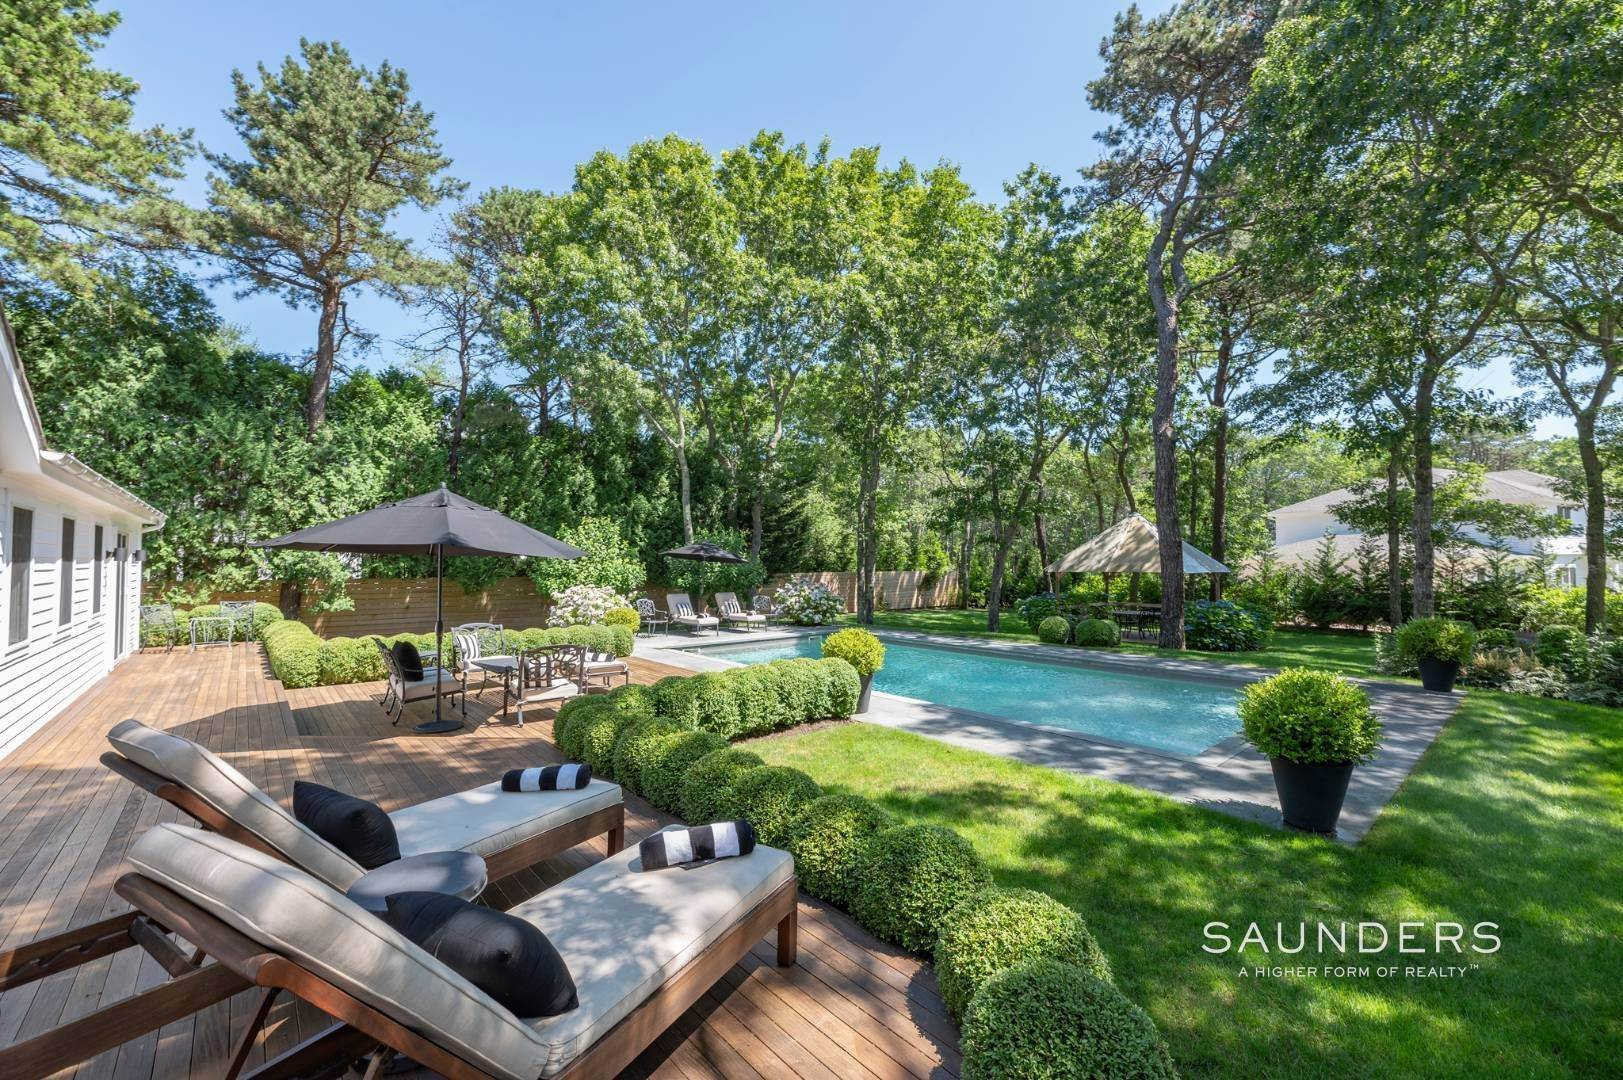 2. Single Family Homes for Sale at Modern Charm In Wainscott 32 East Gate Road, Wainscott, East Hampton Town, NY 11975